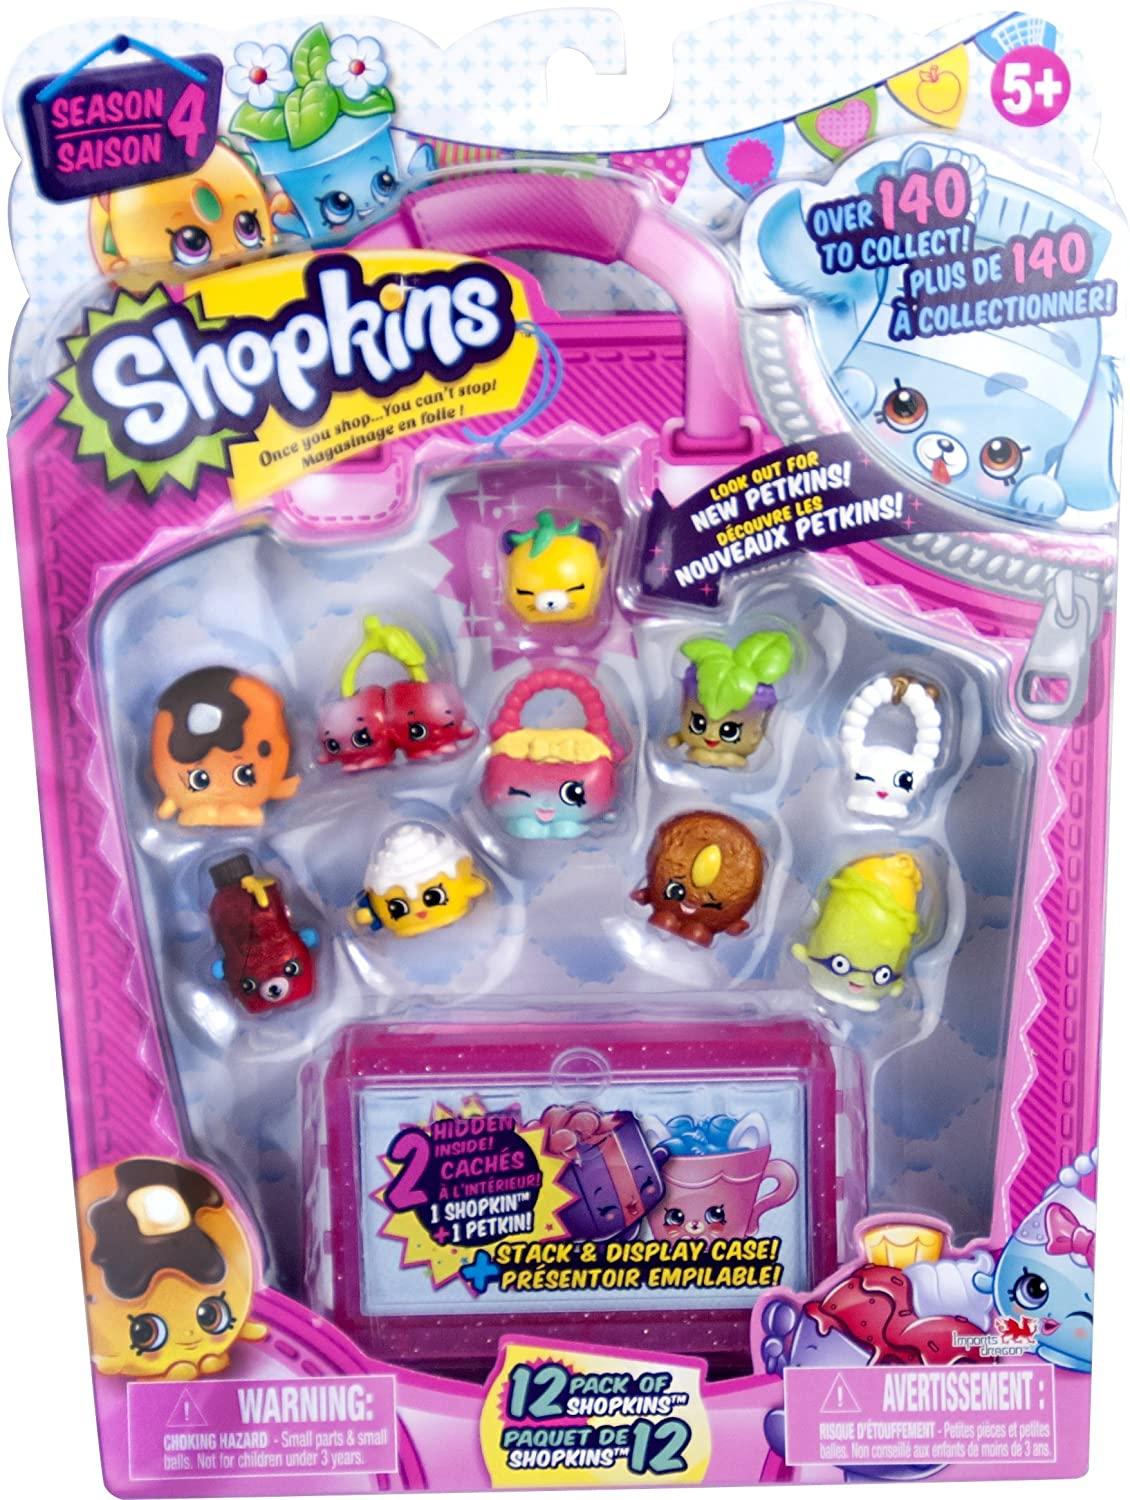 Brand New Shopkins Season 4-12 Pack with Petkins and Stackable Display Case